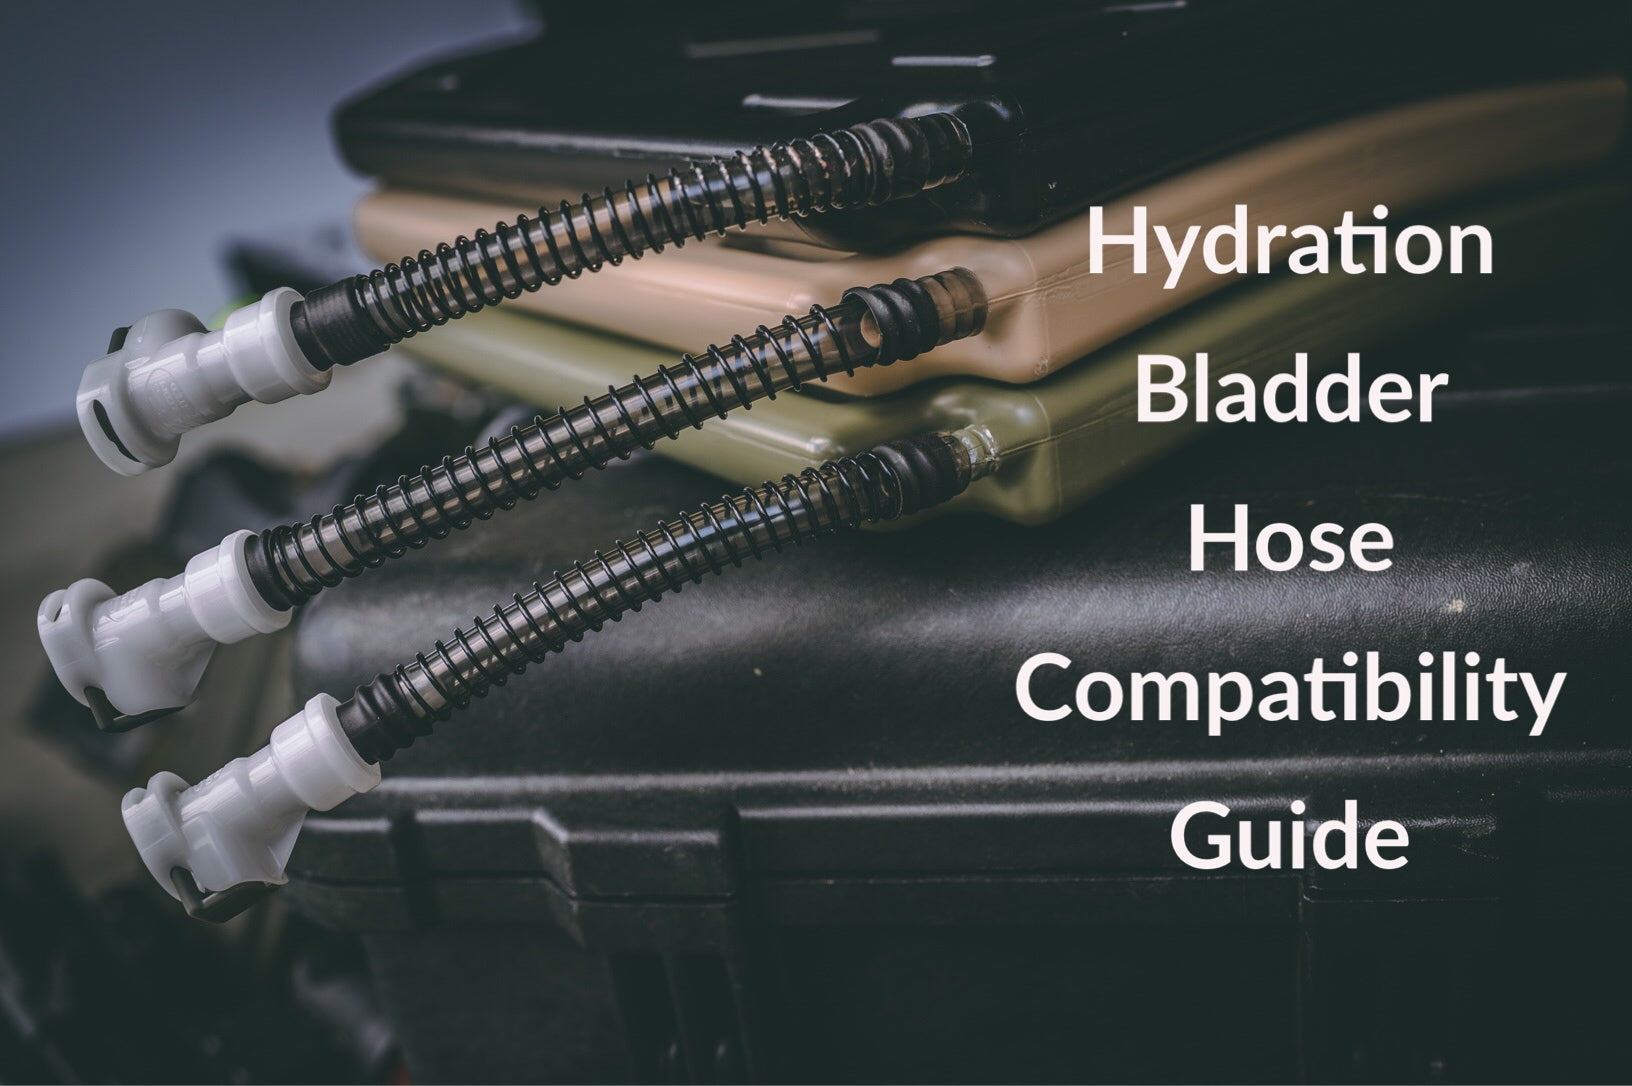 Hydration Bladder/IcePlate Hose Compatibility Guide